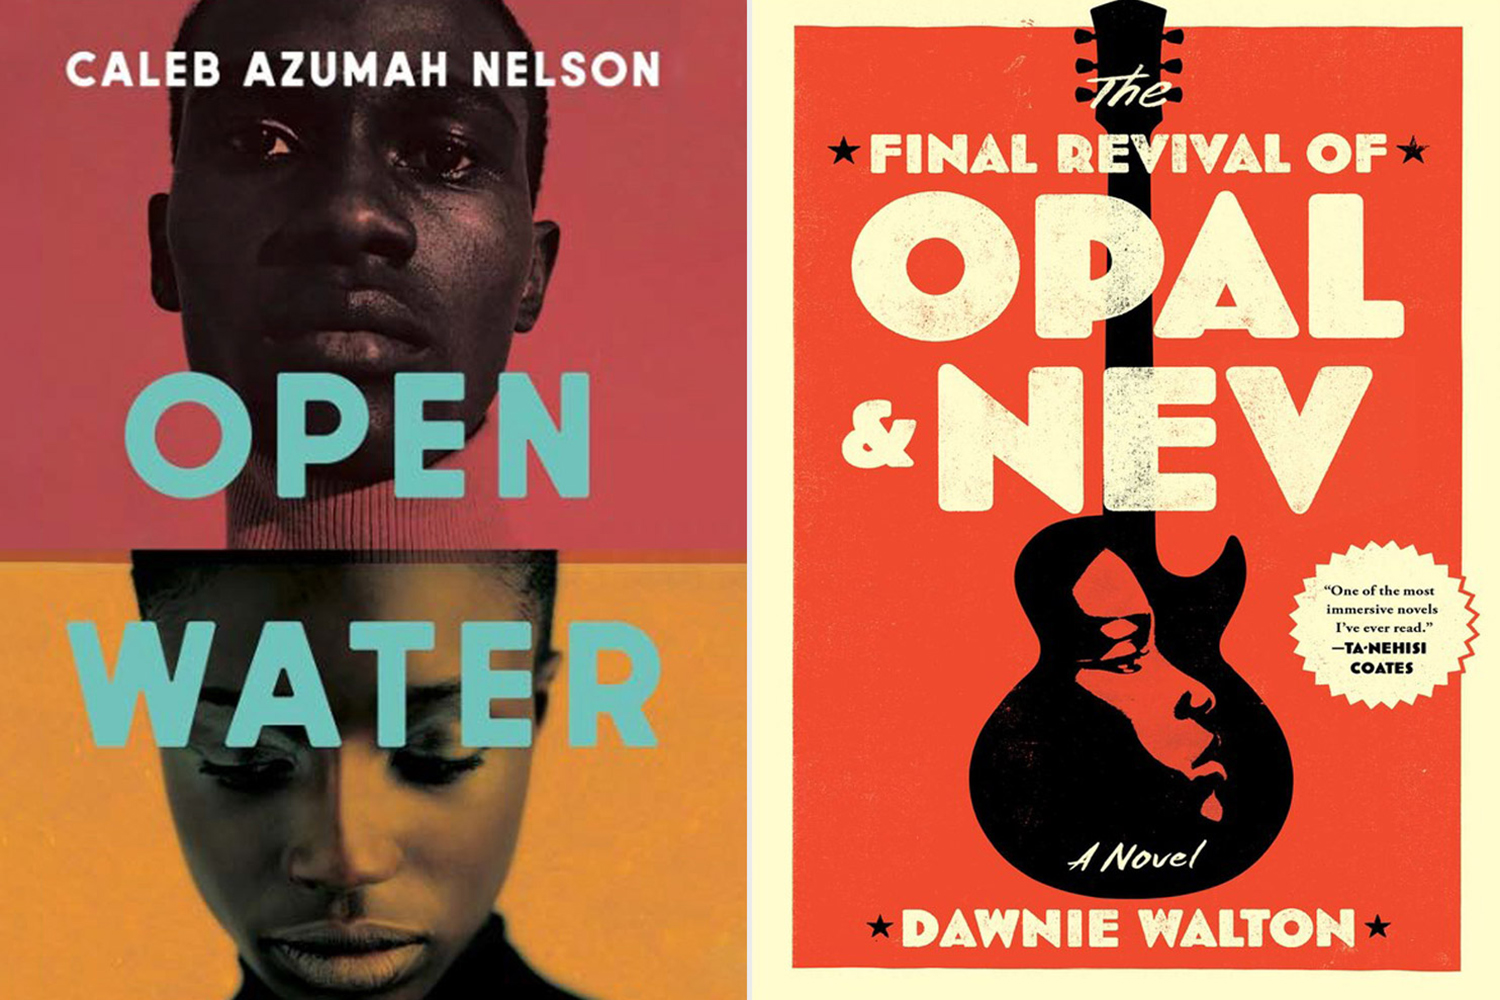 open water, the final revival of opal & Nev